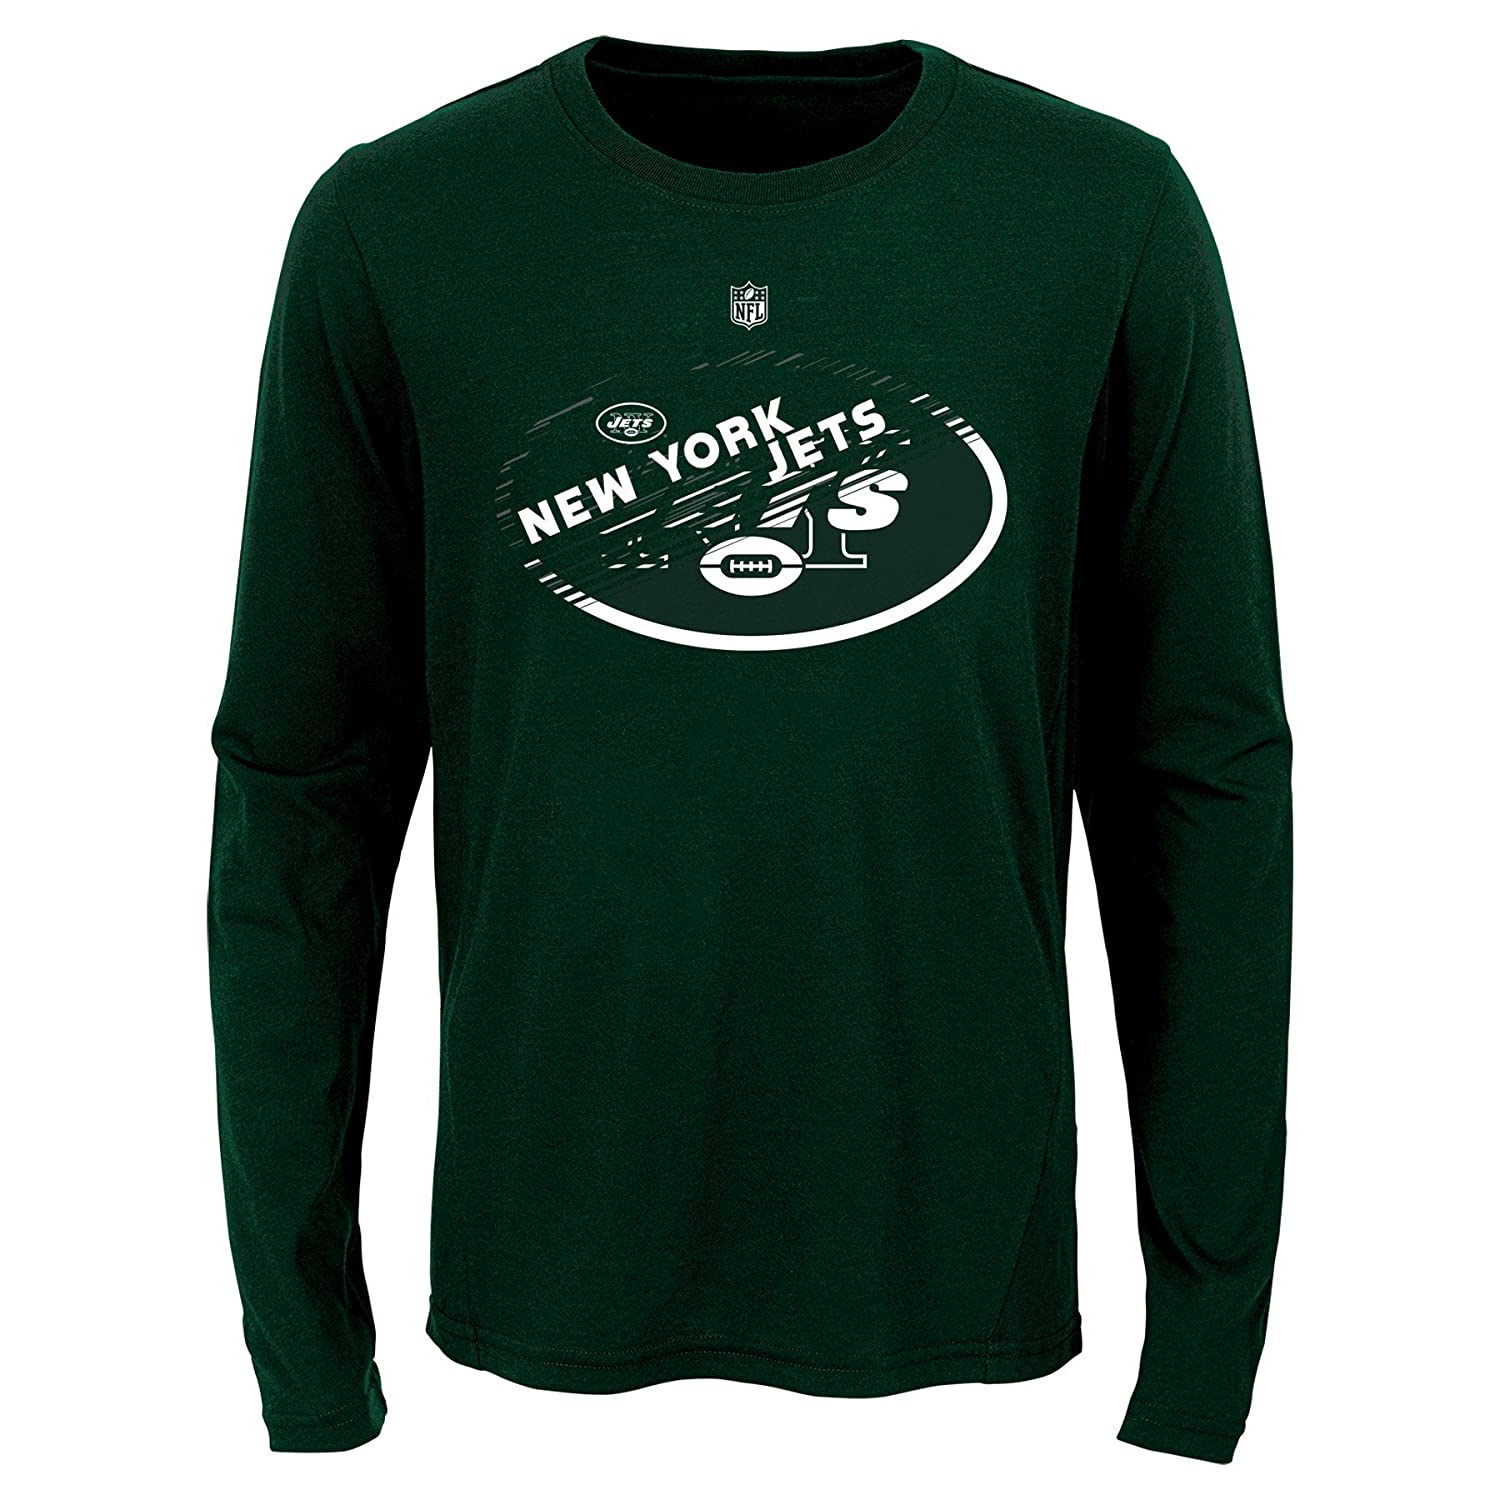 Youth Medium 10-12 NFL New York Jets Youth Boys Flux Long Sleeve Ultra Tee Hunter Green